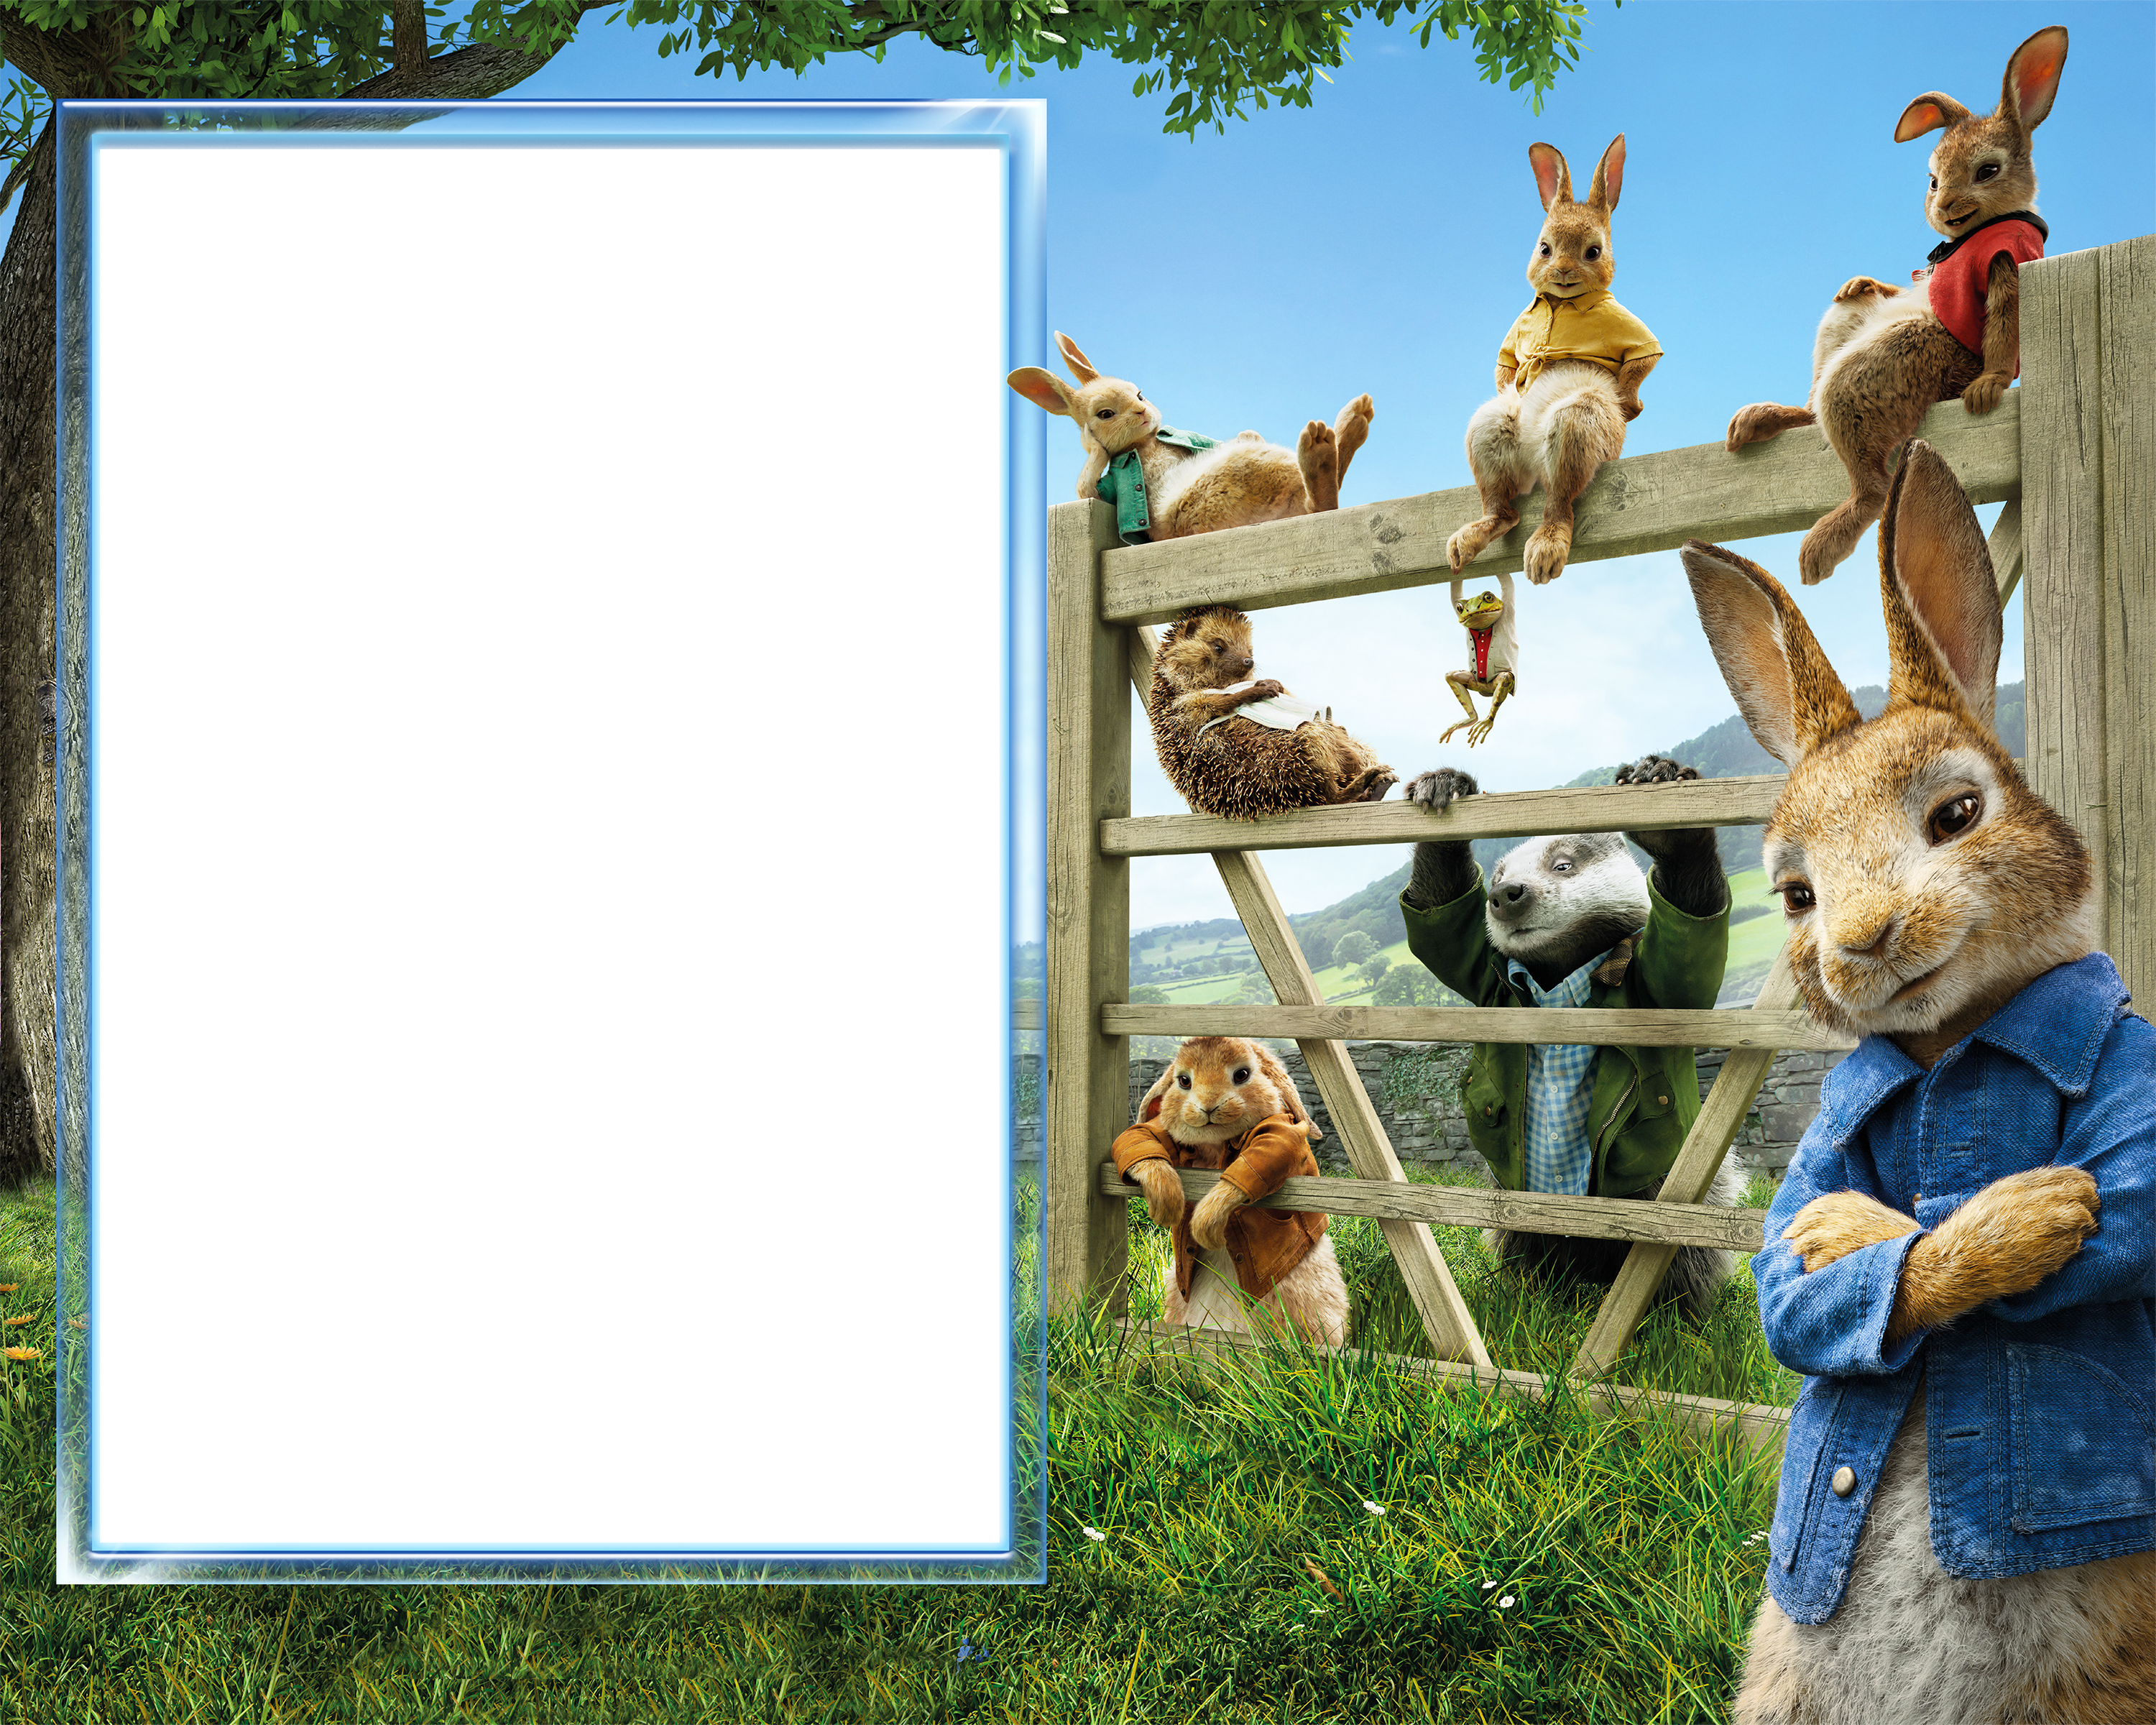 Peter rabbit transparent png. Clipart bunny frame